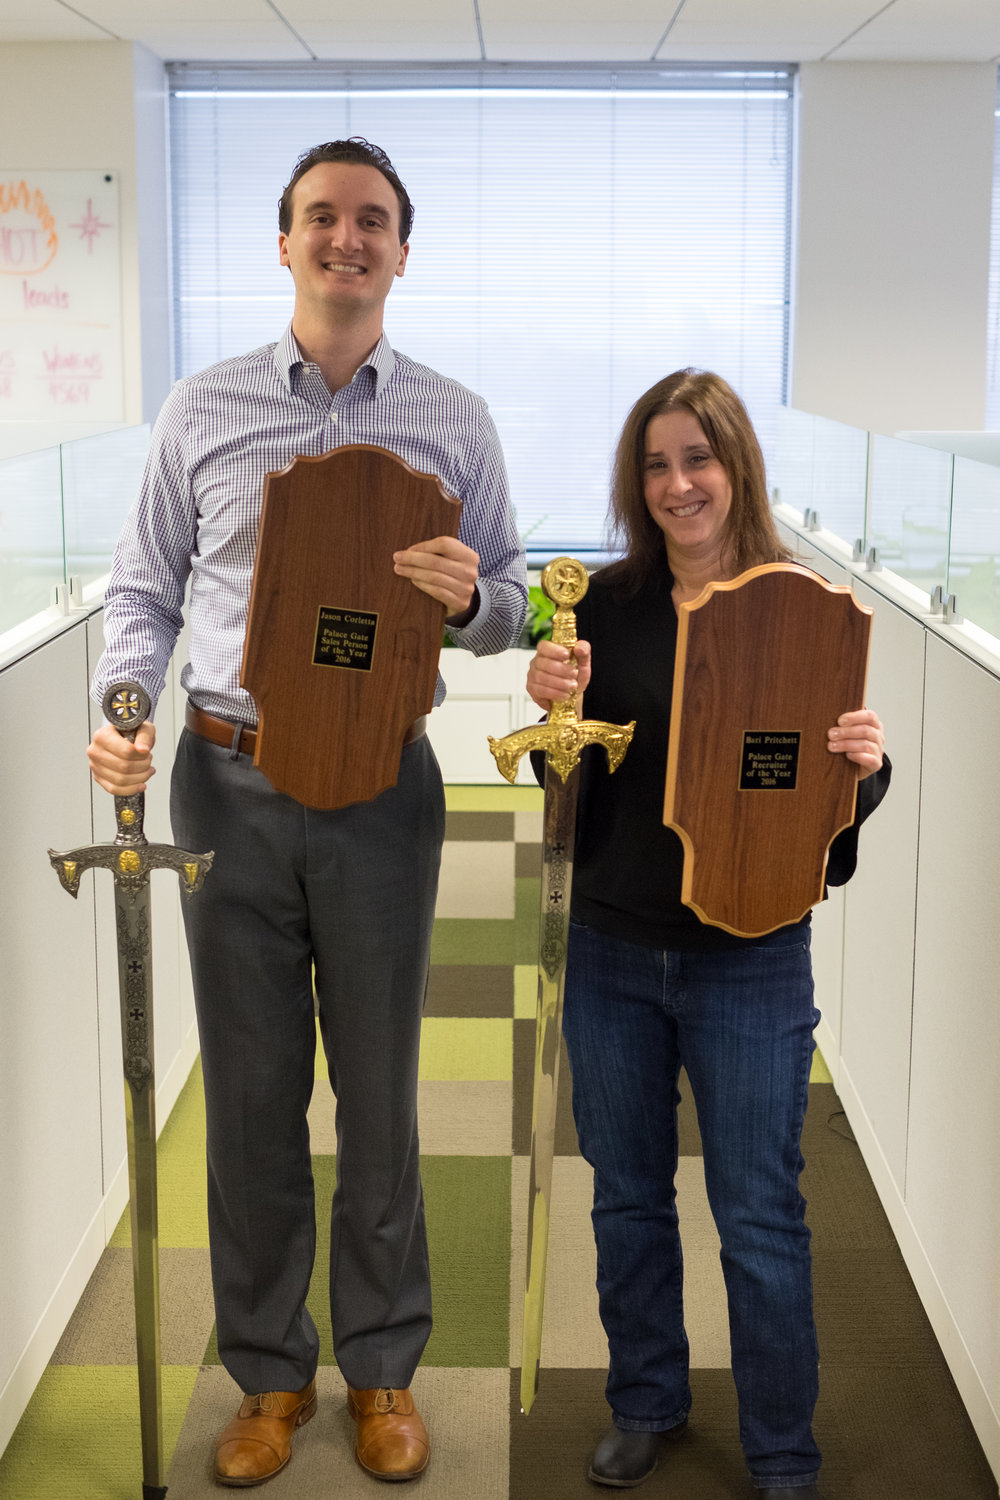 Jason Corletta, 2016 Sales Person of the Year and Bari Pritchett, 2016 Recruiter of the Year pictured together.